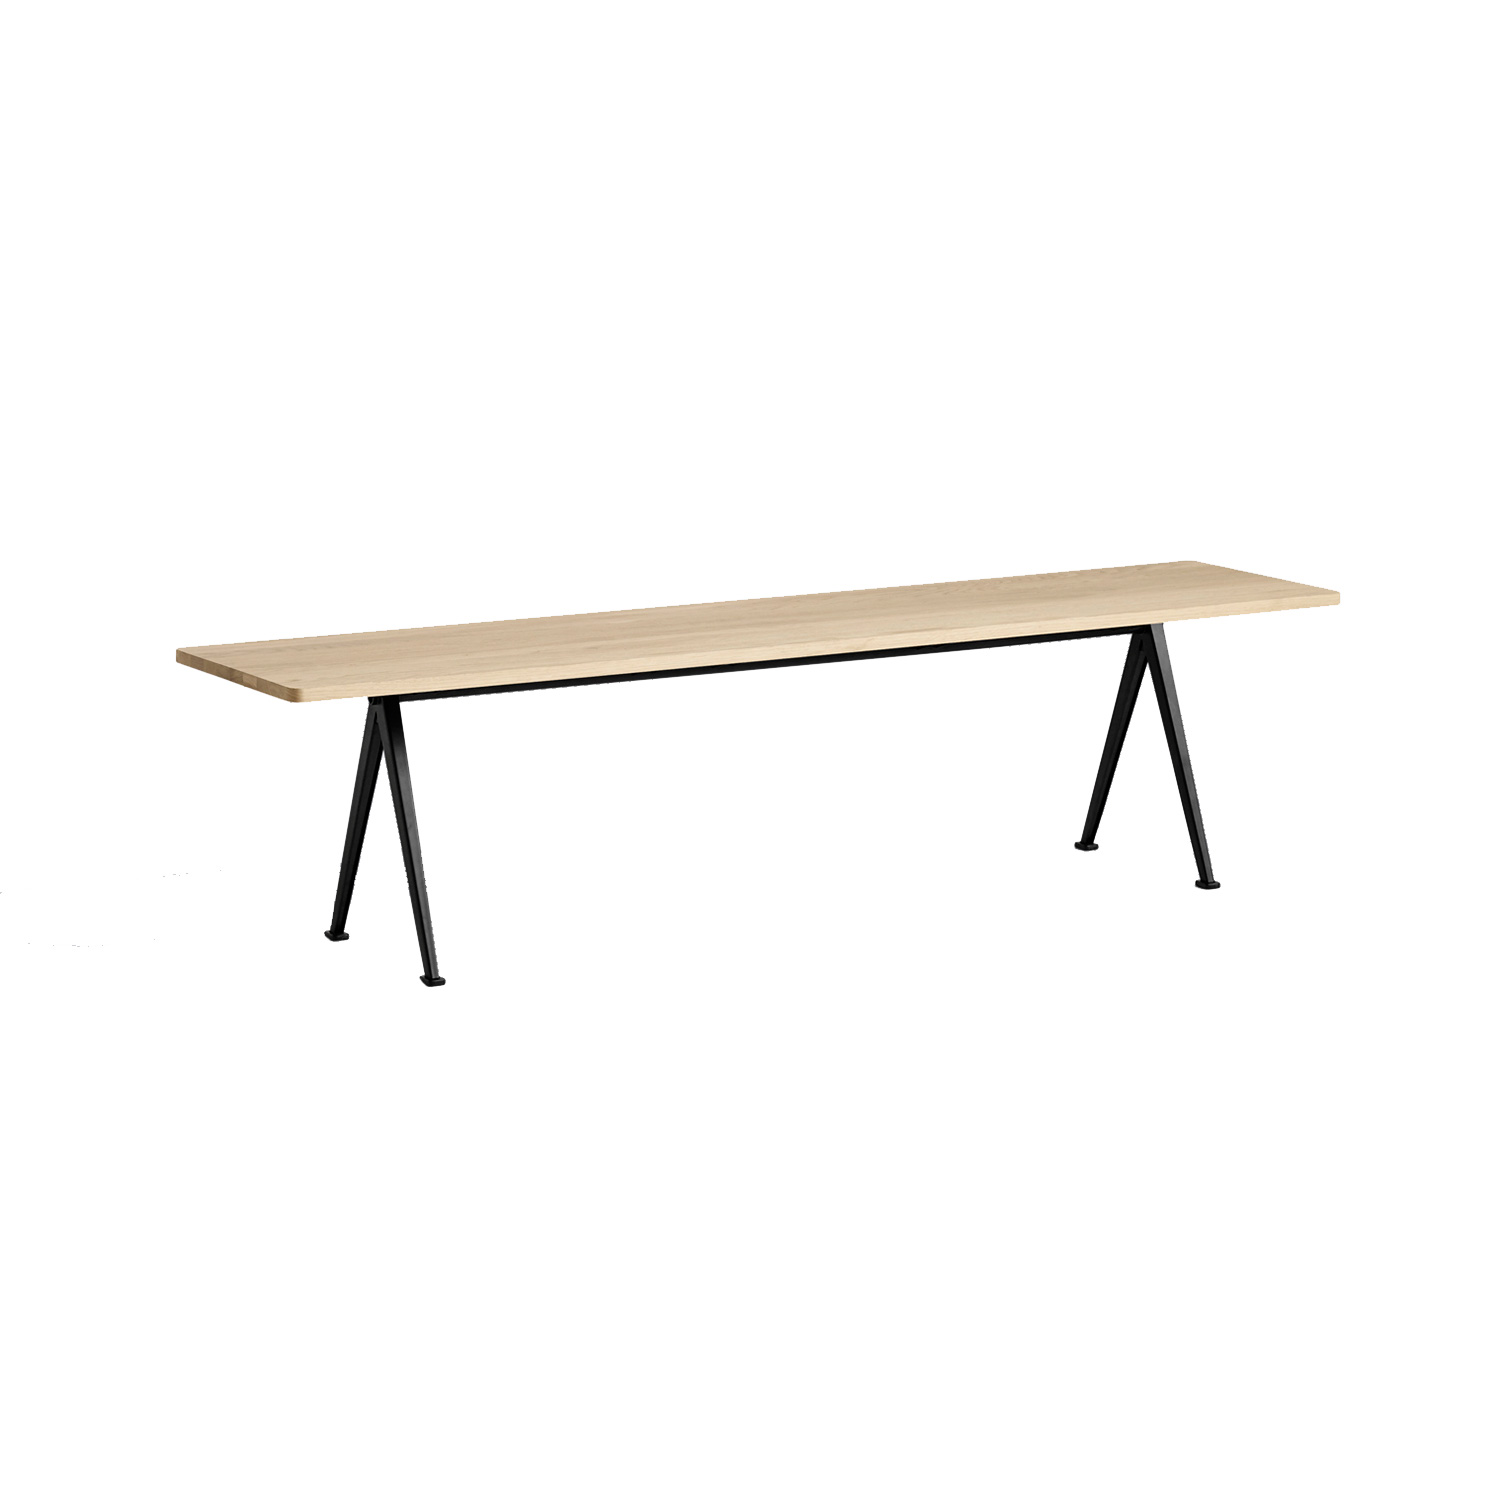 Pyramid bench 12 190x40, black frame/matt